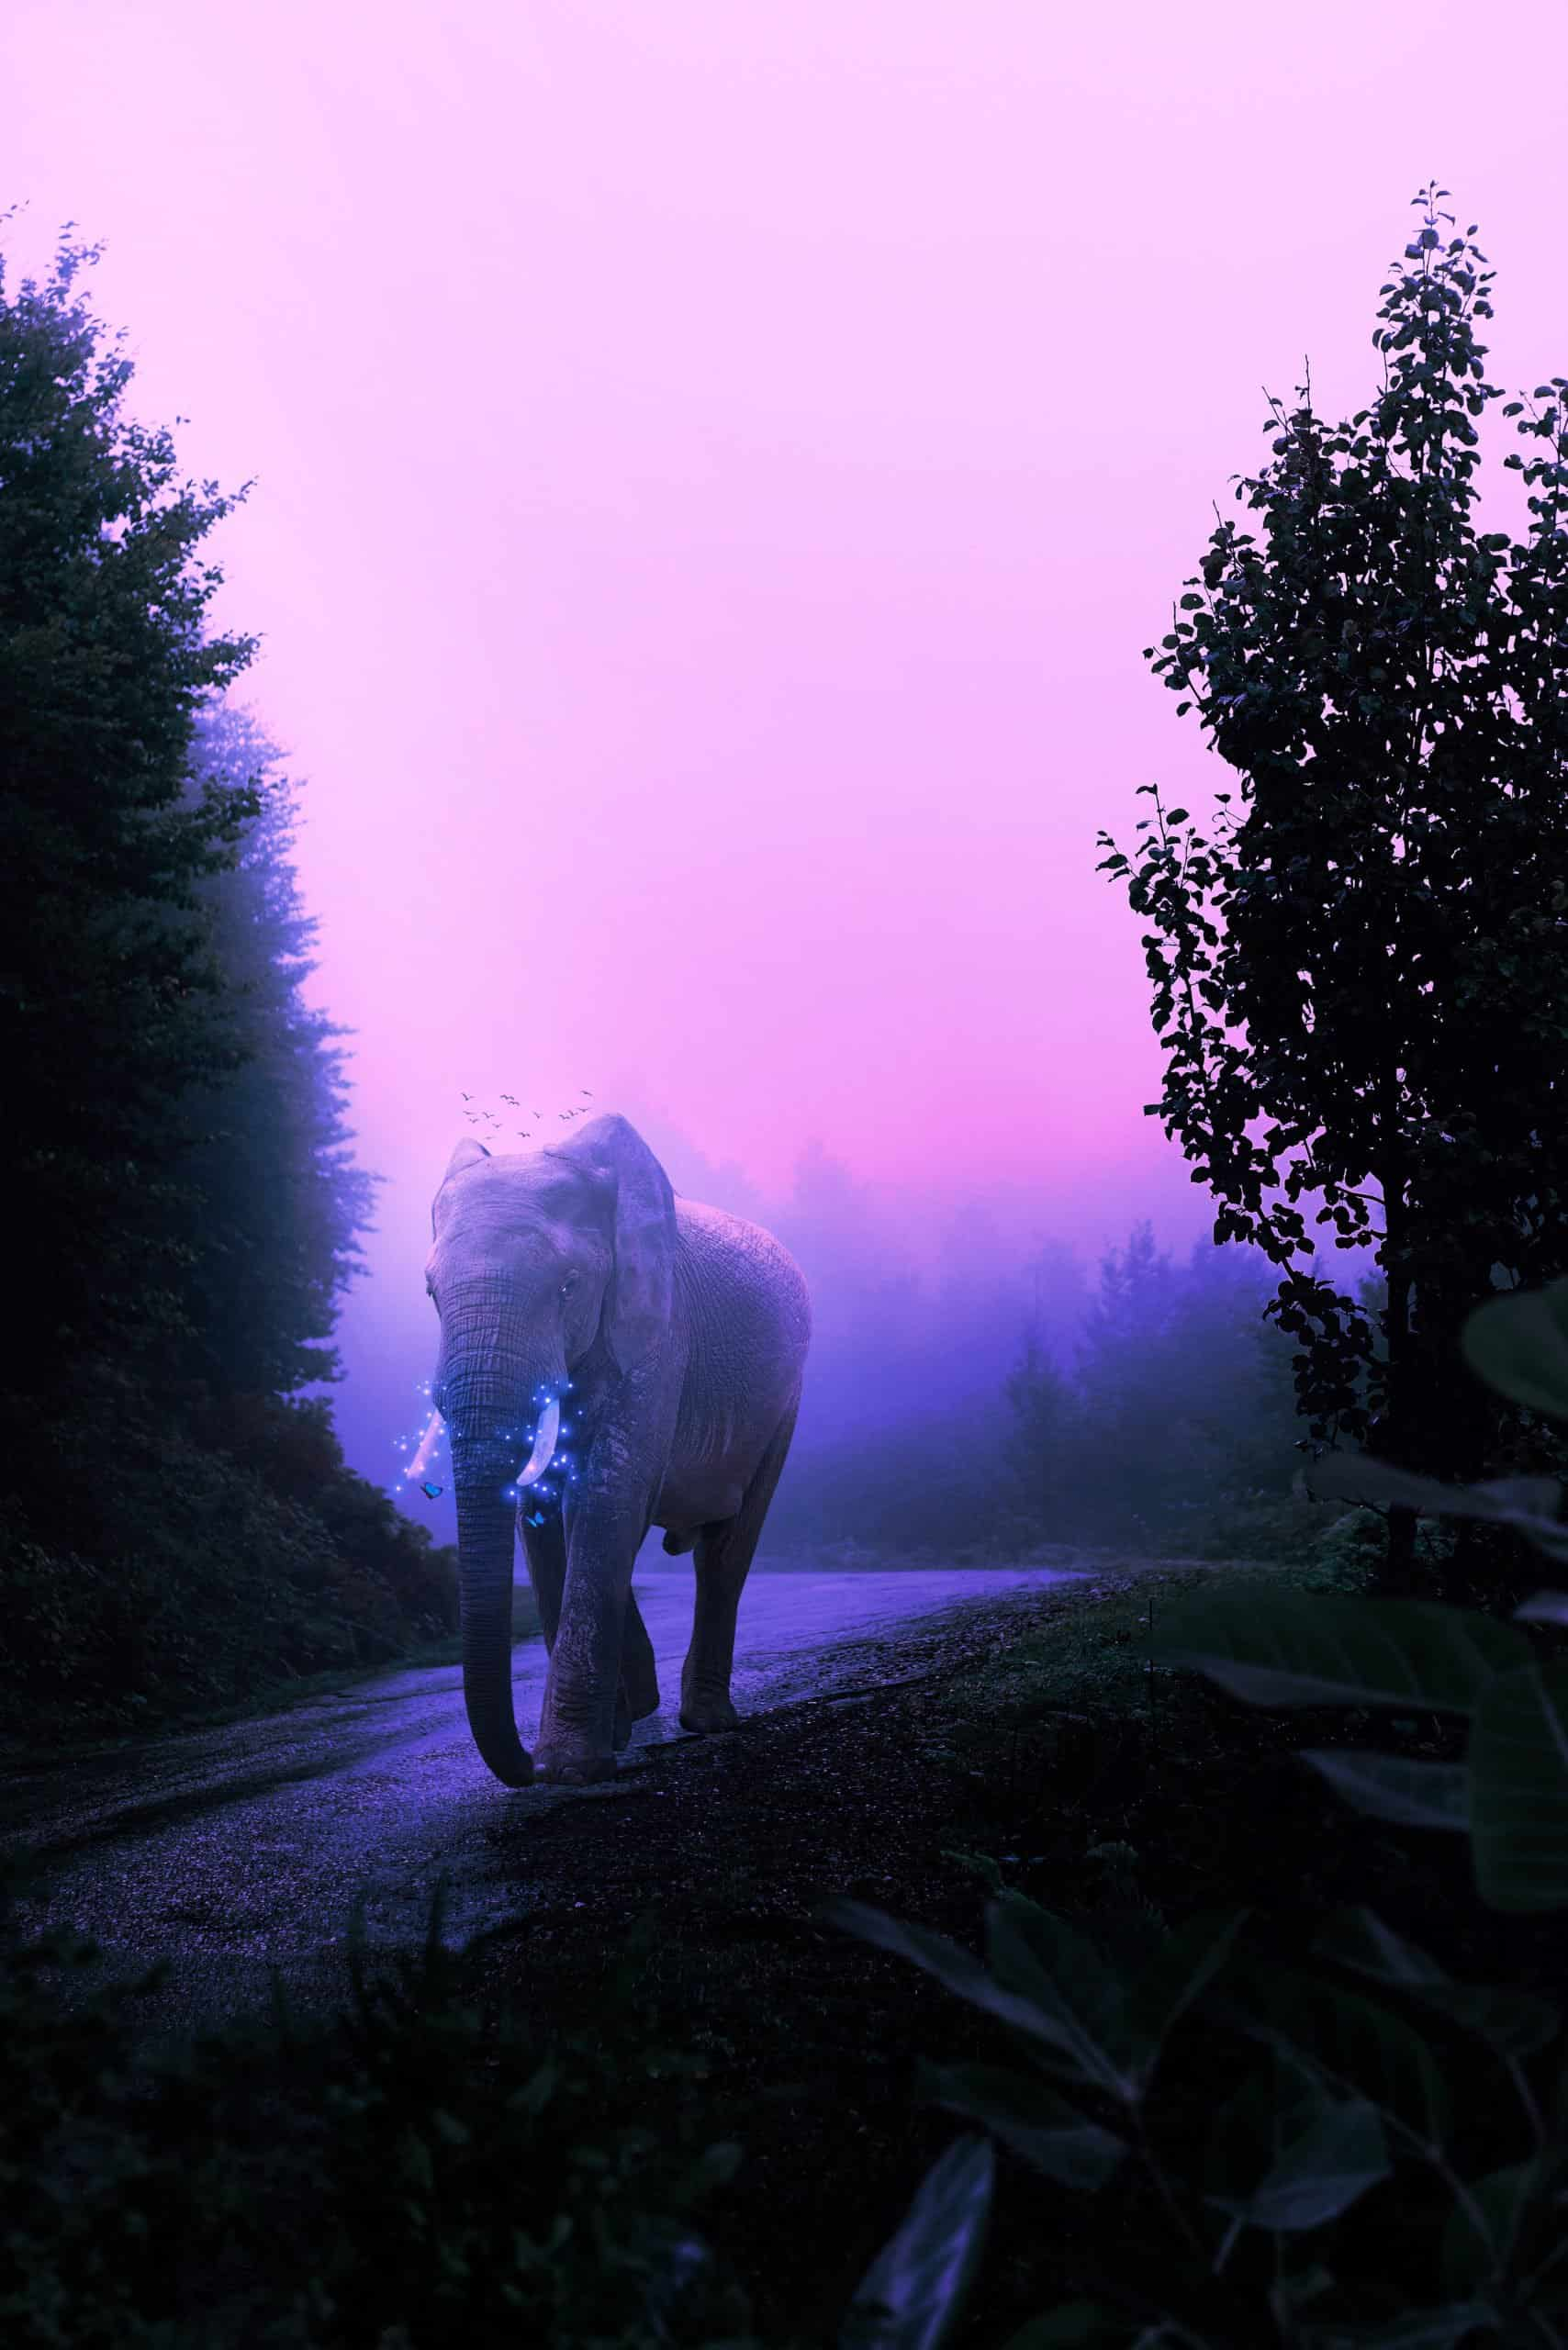 How to Create a Mystical Glowing Elephant in Photoshop